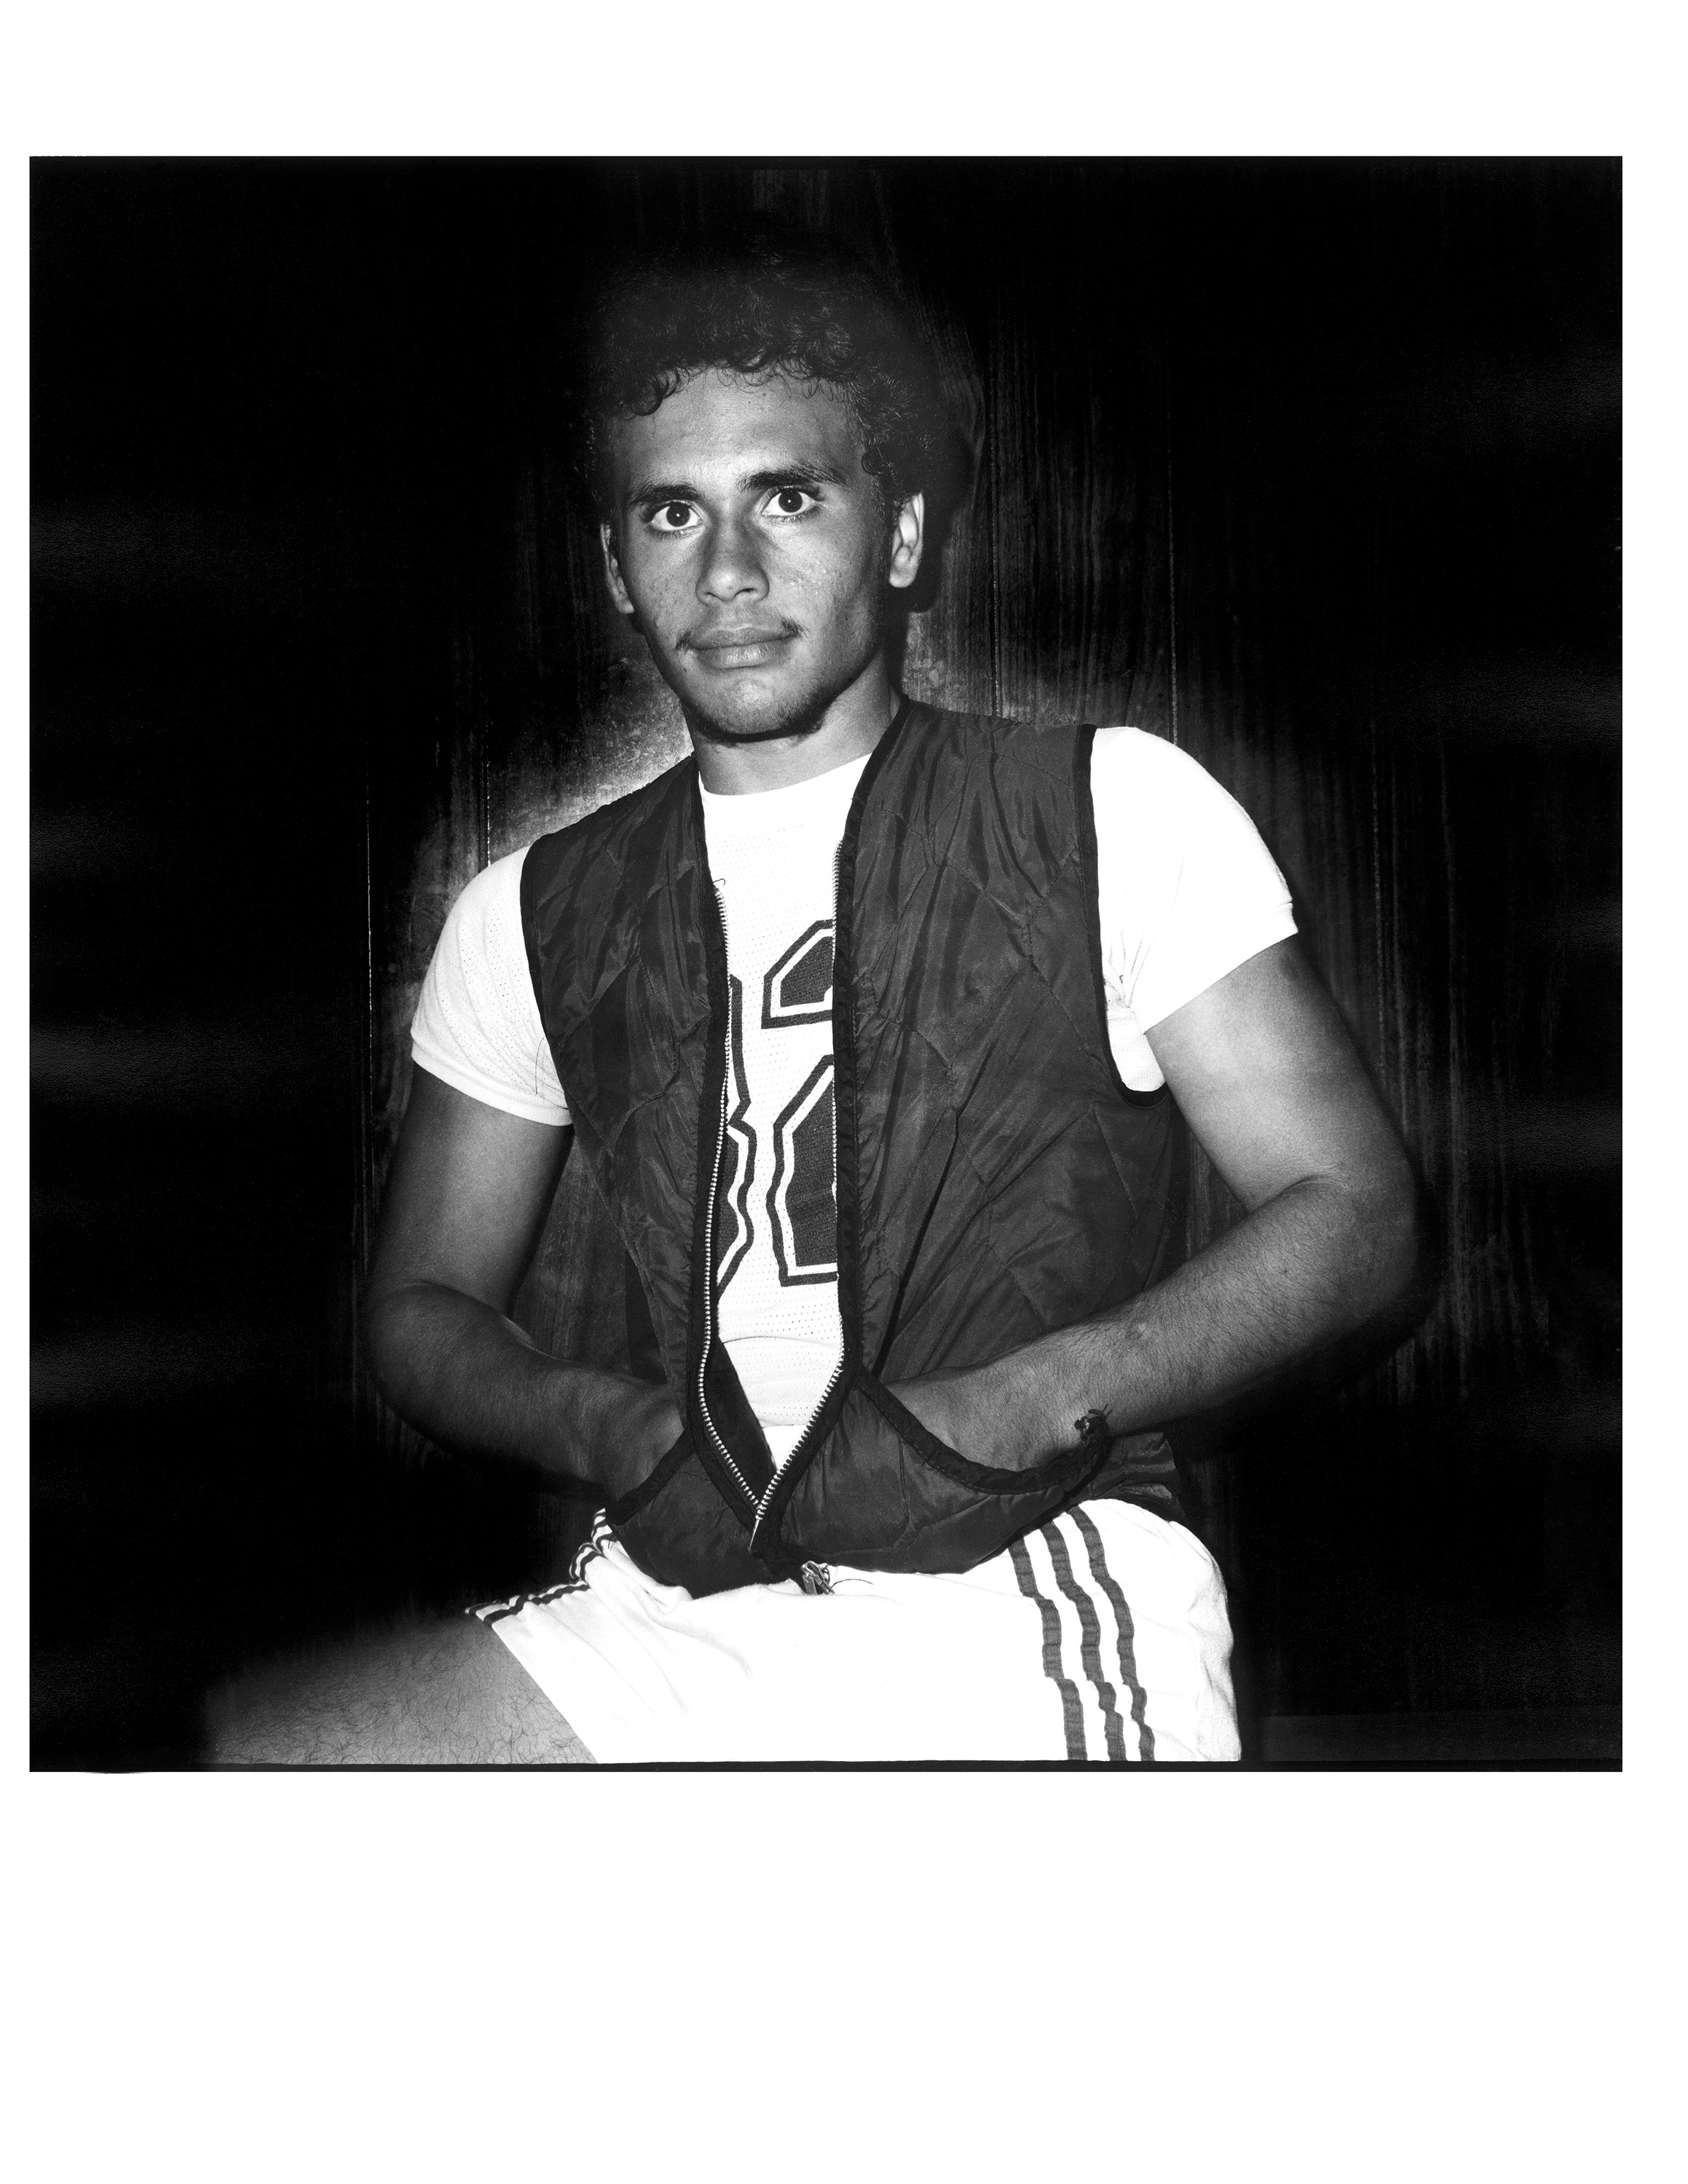 A young man in basketball shorts and a vest looking straight at the camera